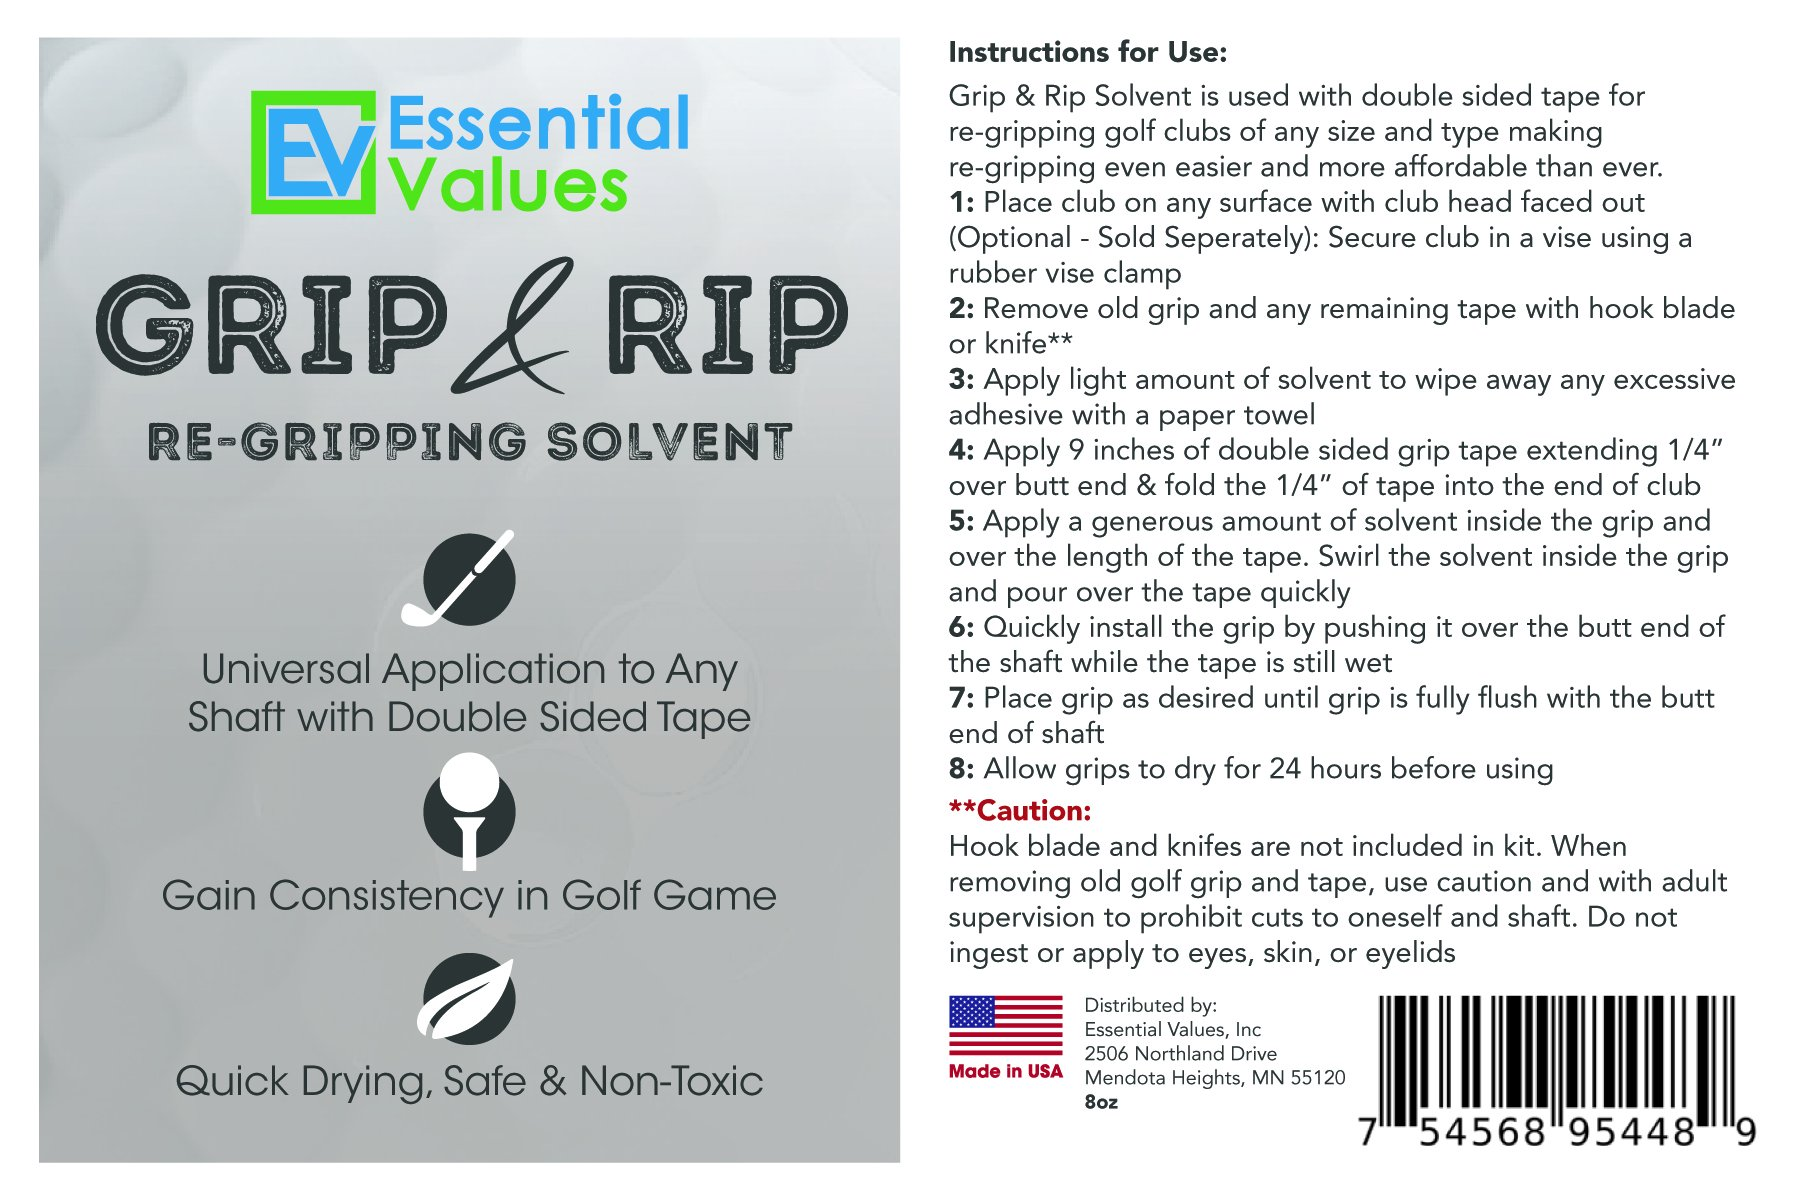 Essential Values Golf Regripping Kit, Best Value - Reusable 8oz Solvent & 28 Tape Strips To Regrip Your Entire Golf Grip Set (8 OZ Solvent & 28 Strips) by Essential Values (Image #7)